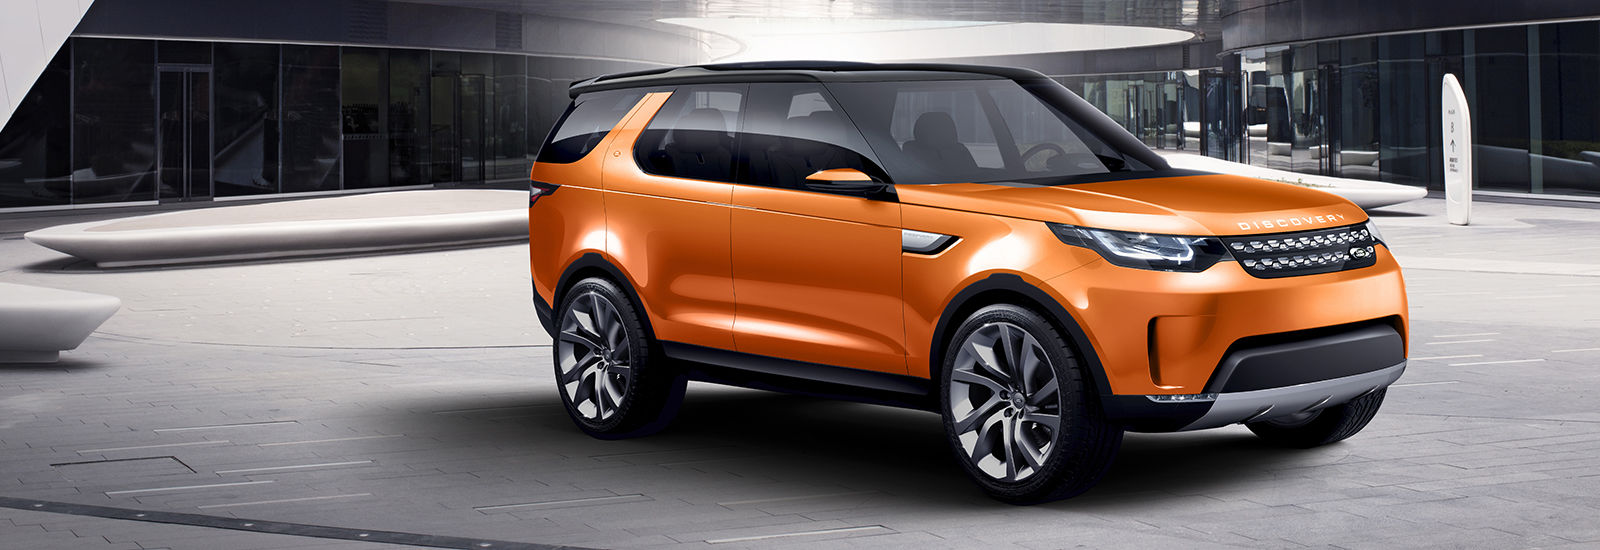 2017 Land Rover Discovery 5 Price Specs Release Date